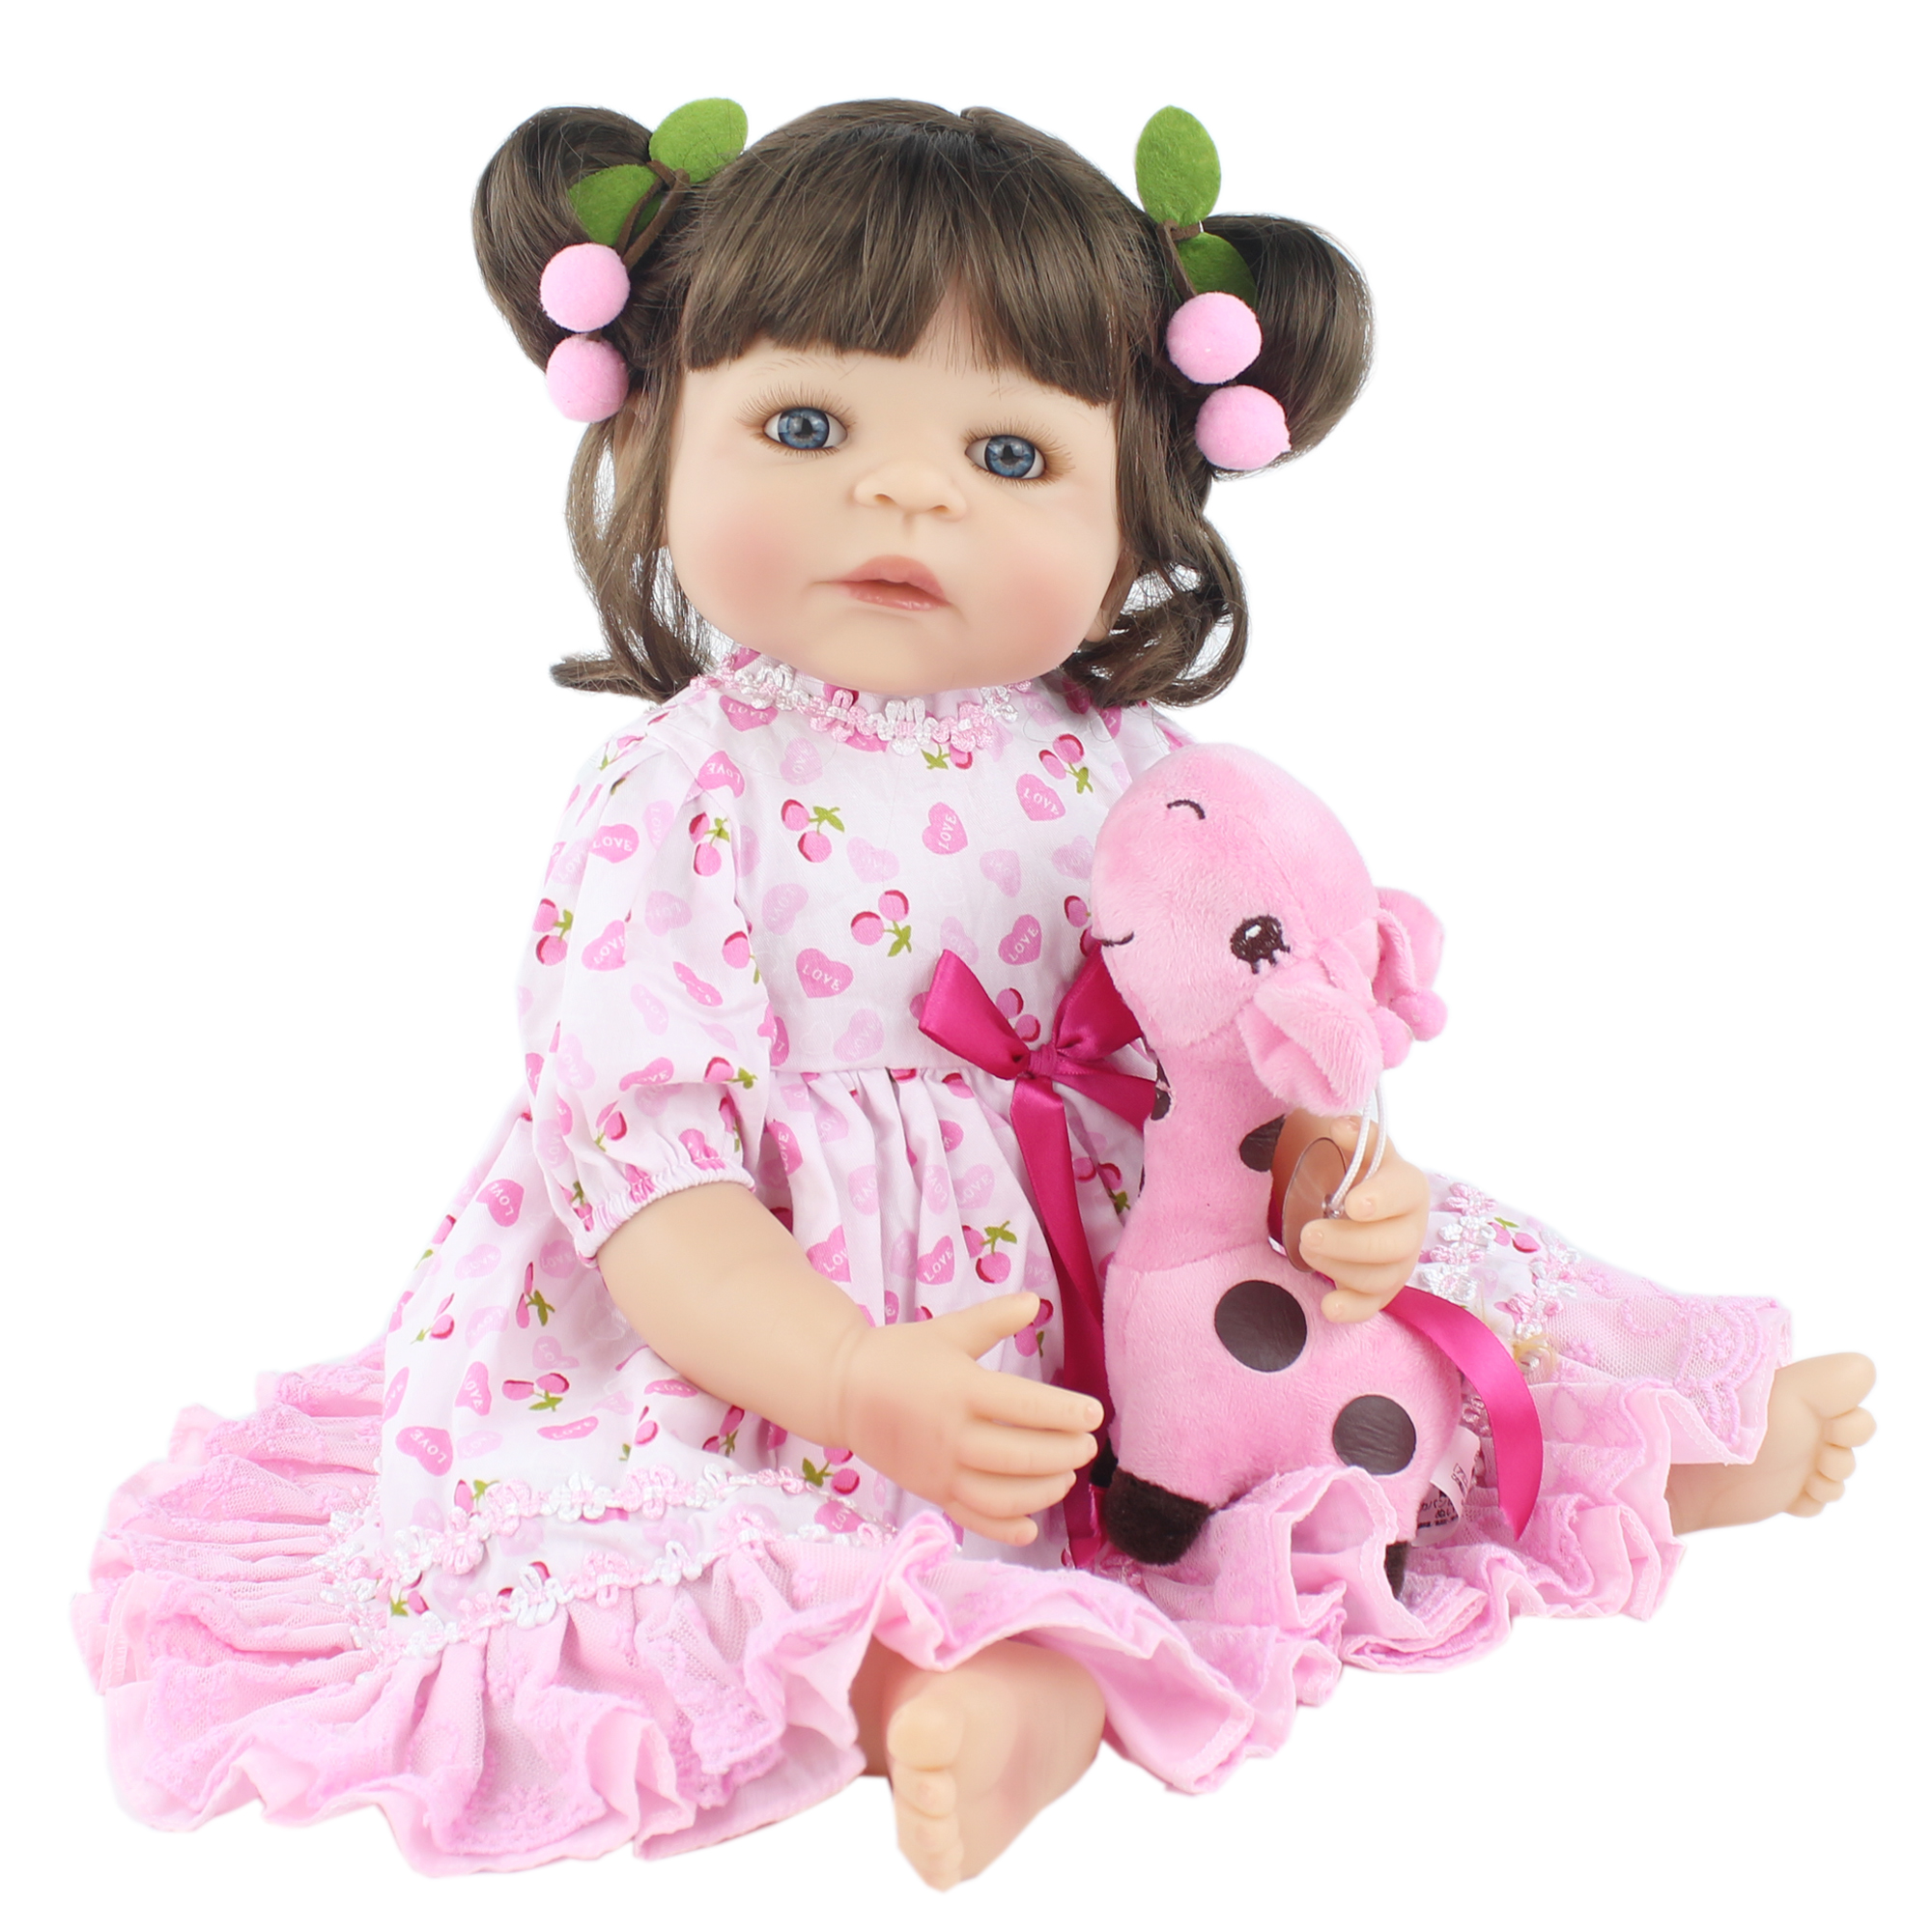 55cm Full Silicone Reborn Baby Doll Toy For Girl Newborn Princess Toddler Babies Realistic Classic Bathe Toy Kids Bebe Boneca